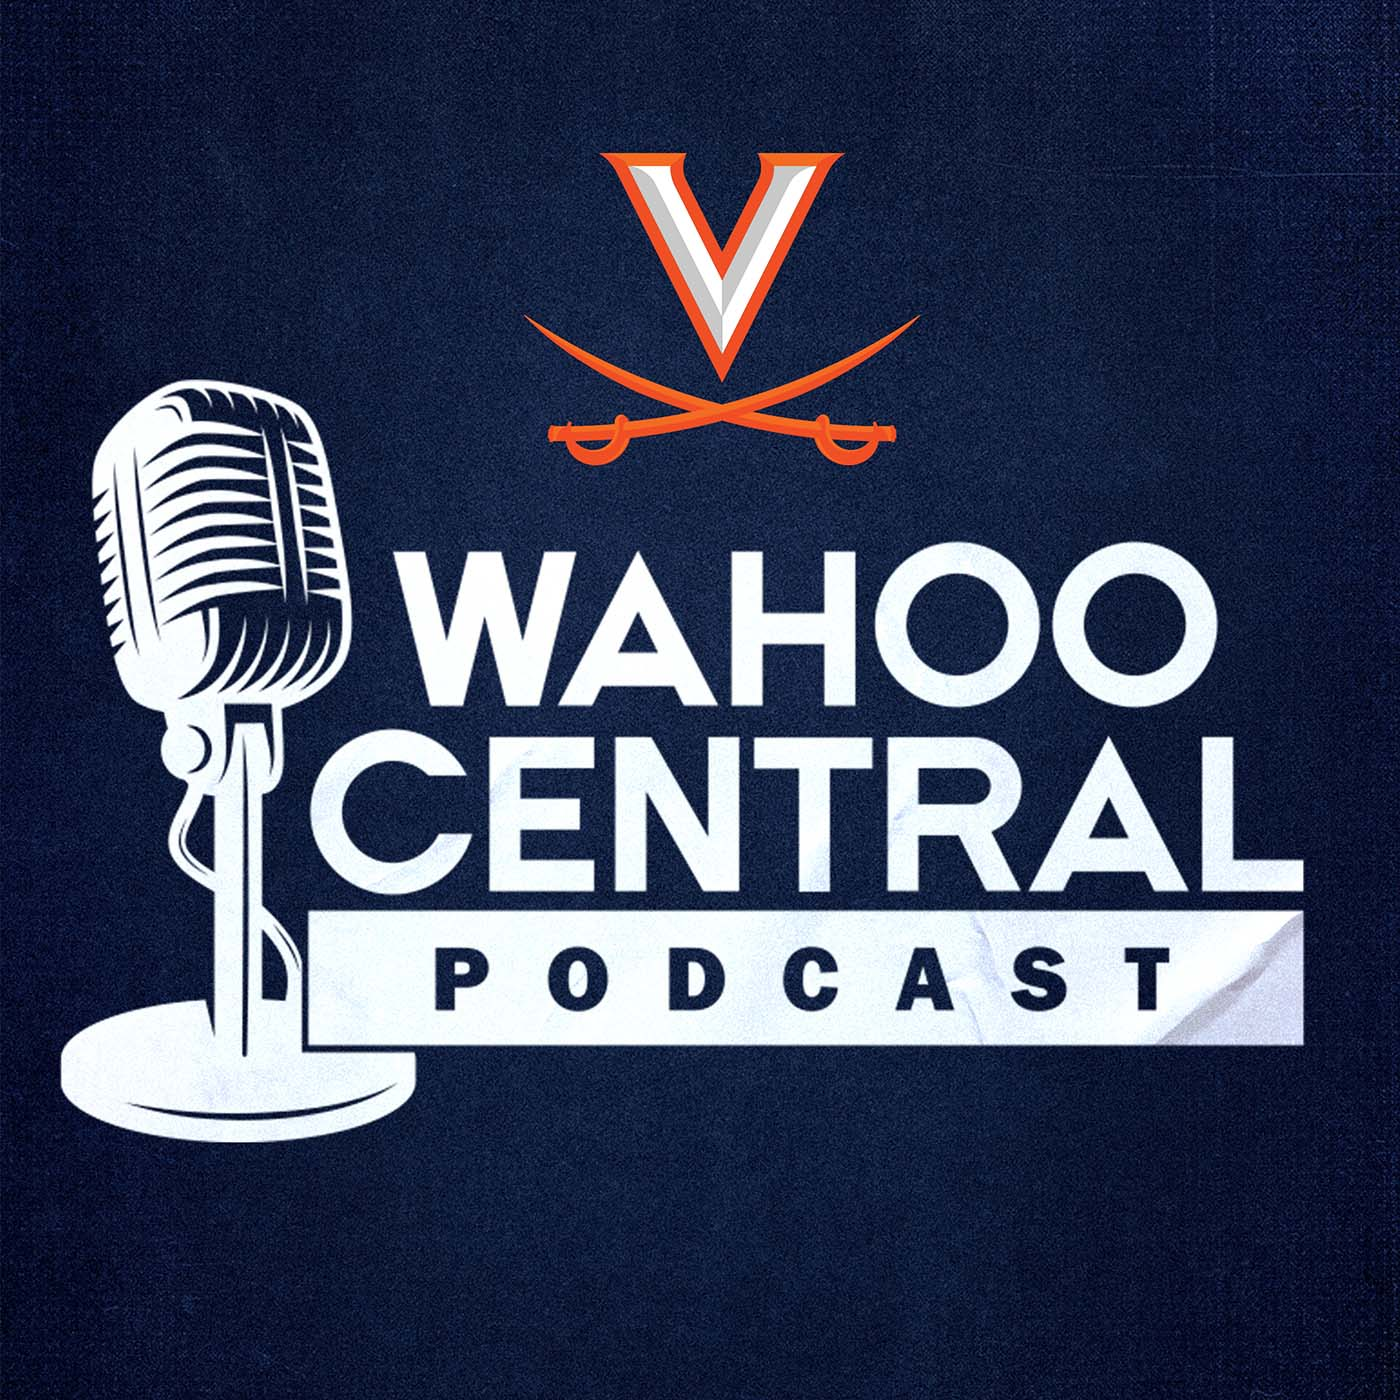 Wahoo Central Podcast: Kevin Sauer and Mike Vasil